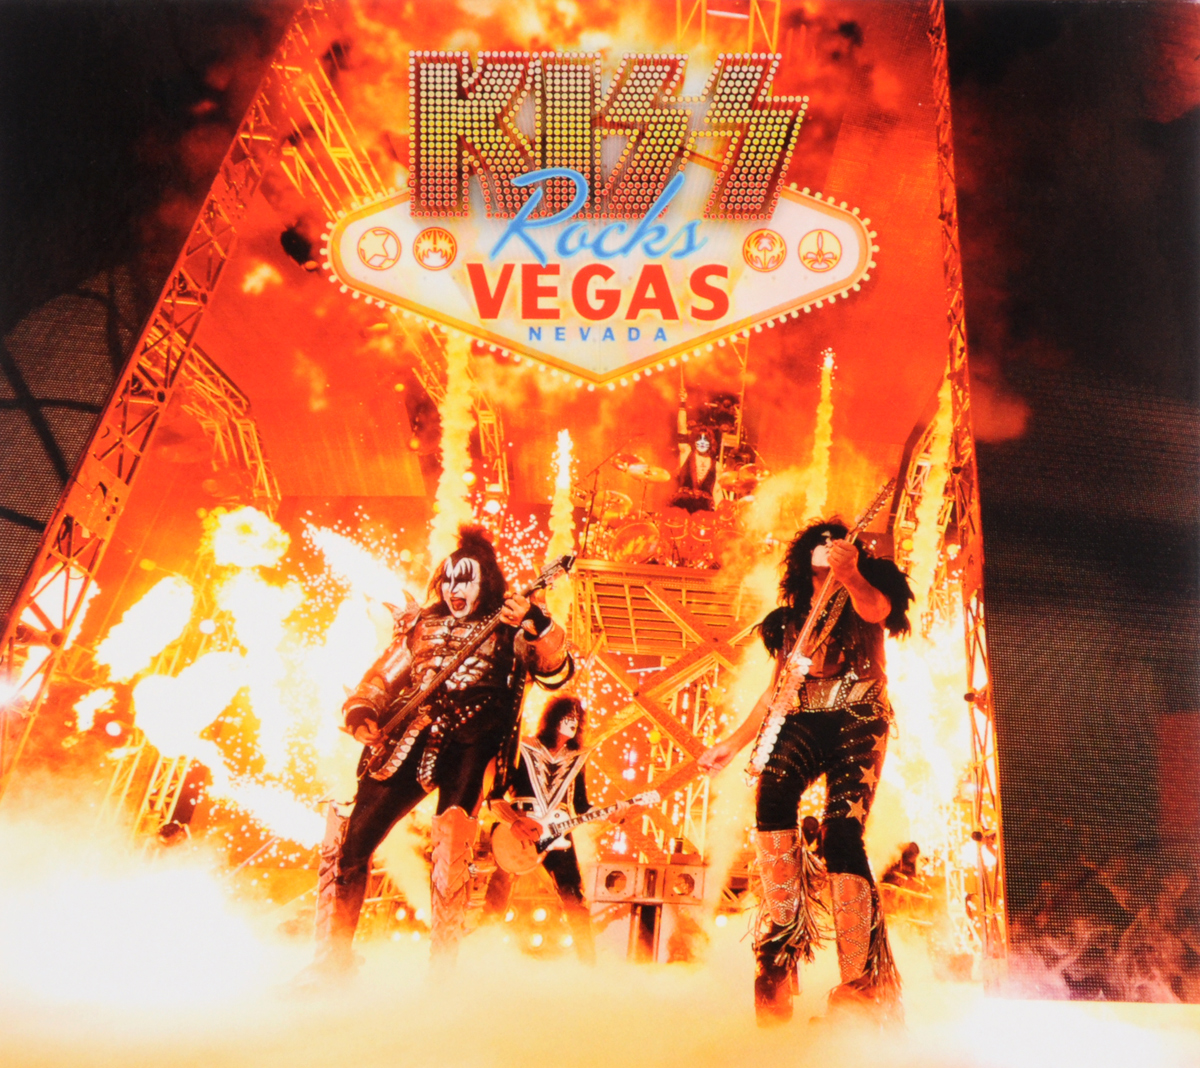 """Kiss"" Kiss. Rocks Vegas (CD + DVD)"